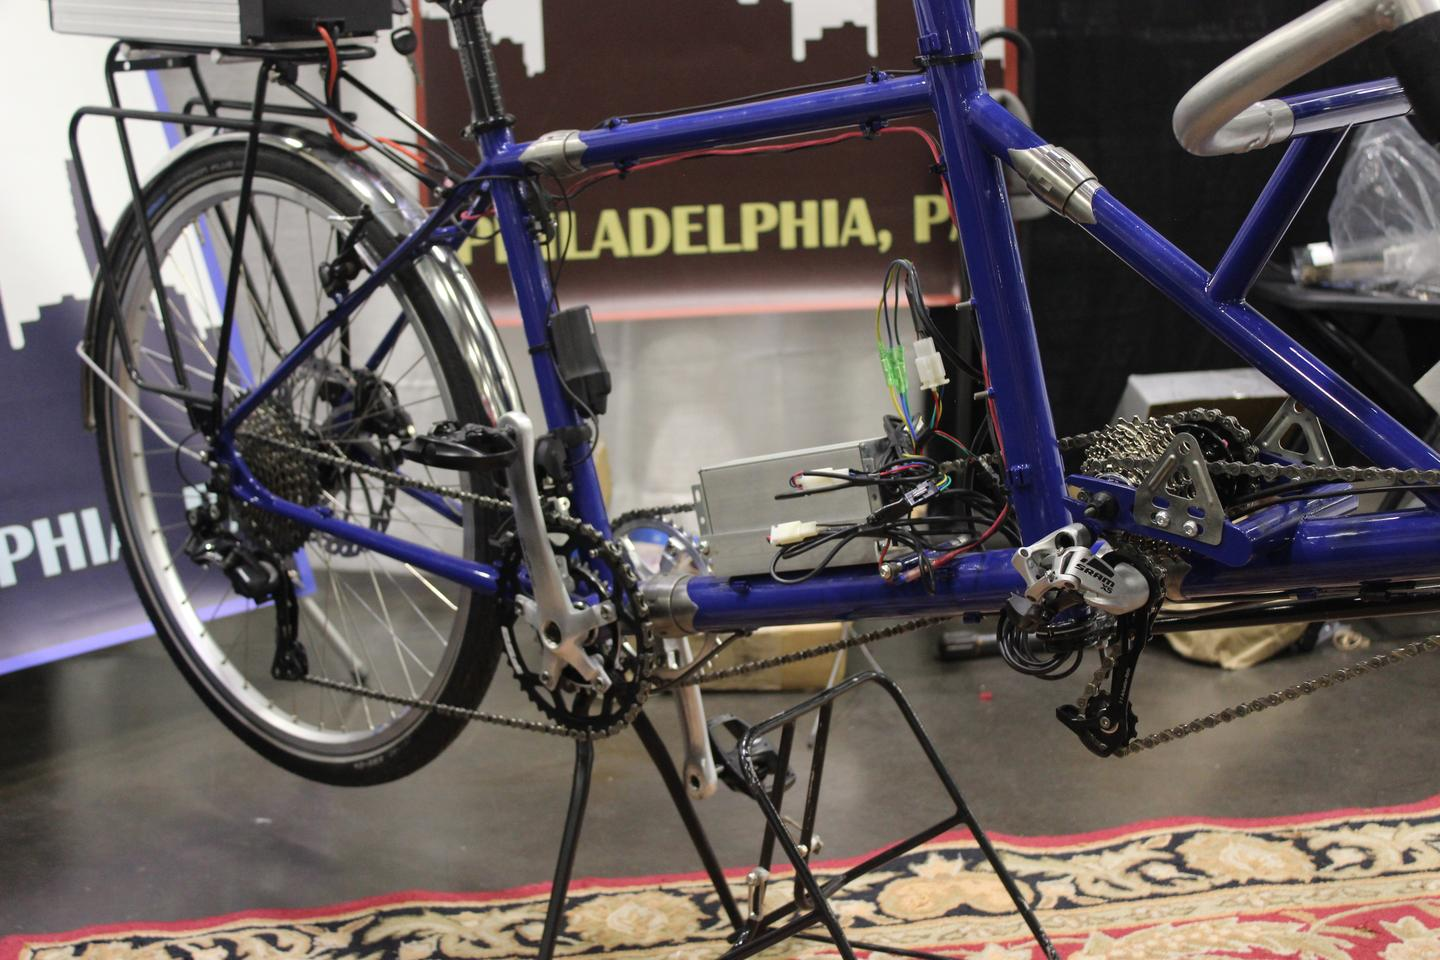 One thing that sets the Bilenky ViewPoint eHarmonyapart from most other tandems is its independent cadence system